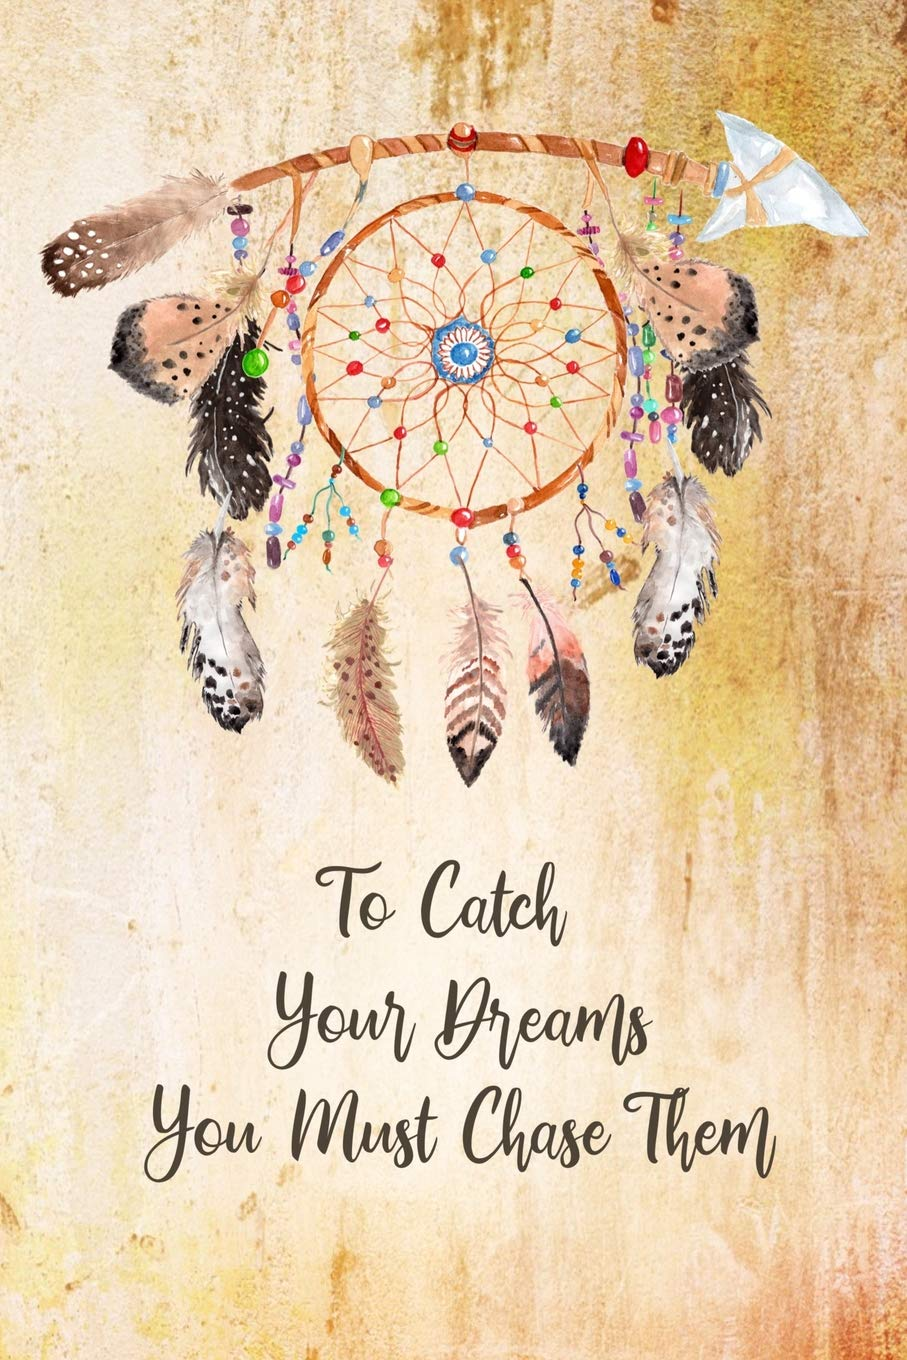 Amazon   To Catch Your Dreams You Must Chase Them: Dream Catcher ...